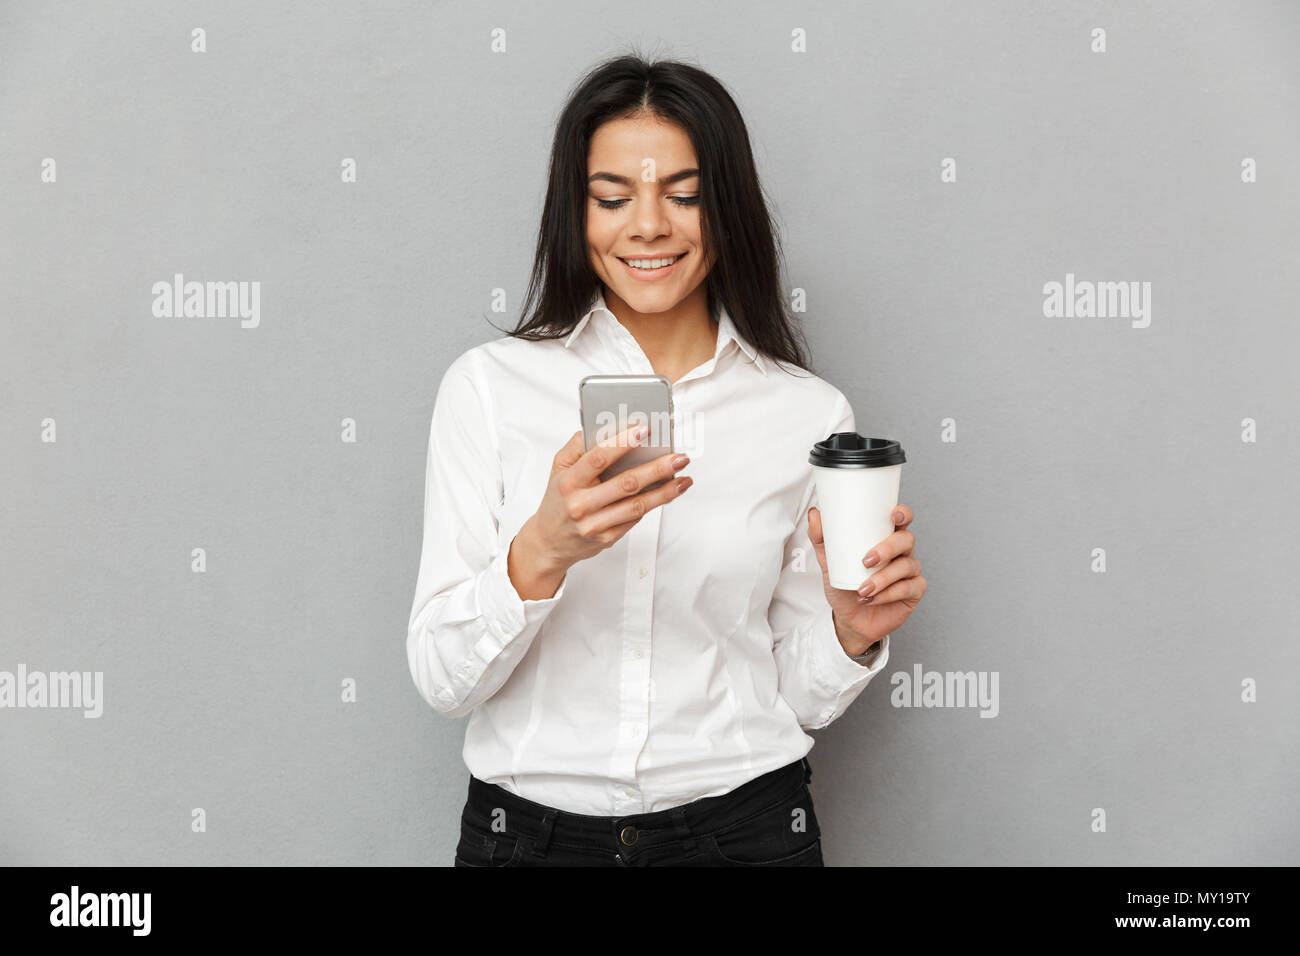 Photo of attractive business woman in formal wear holding mobile phone and takeaway coffee in hands isolated over gray background - Stock Image